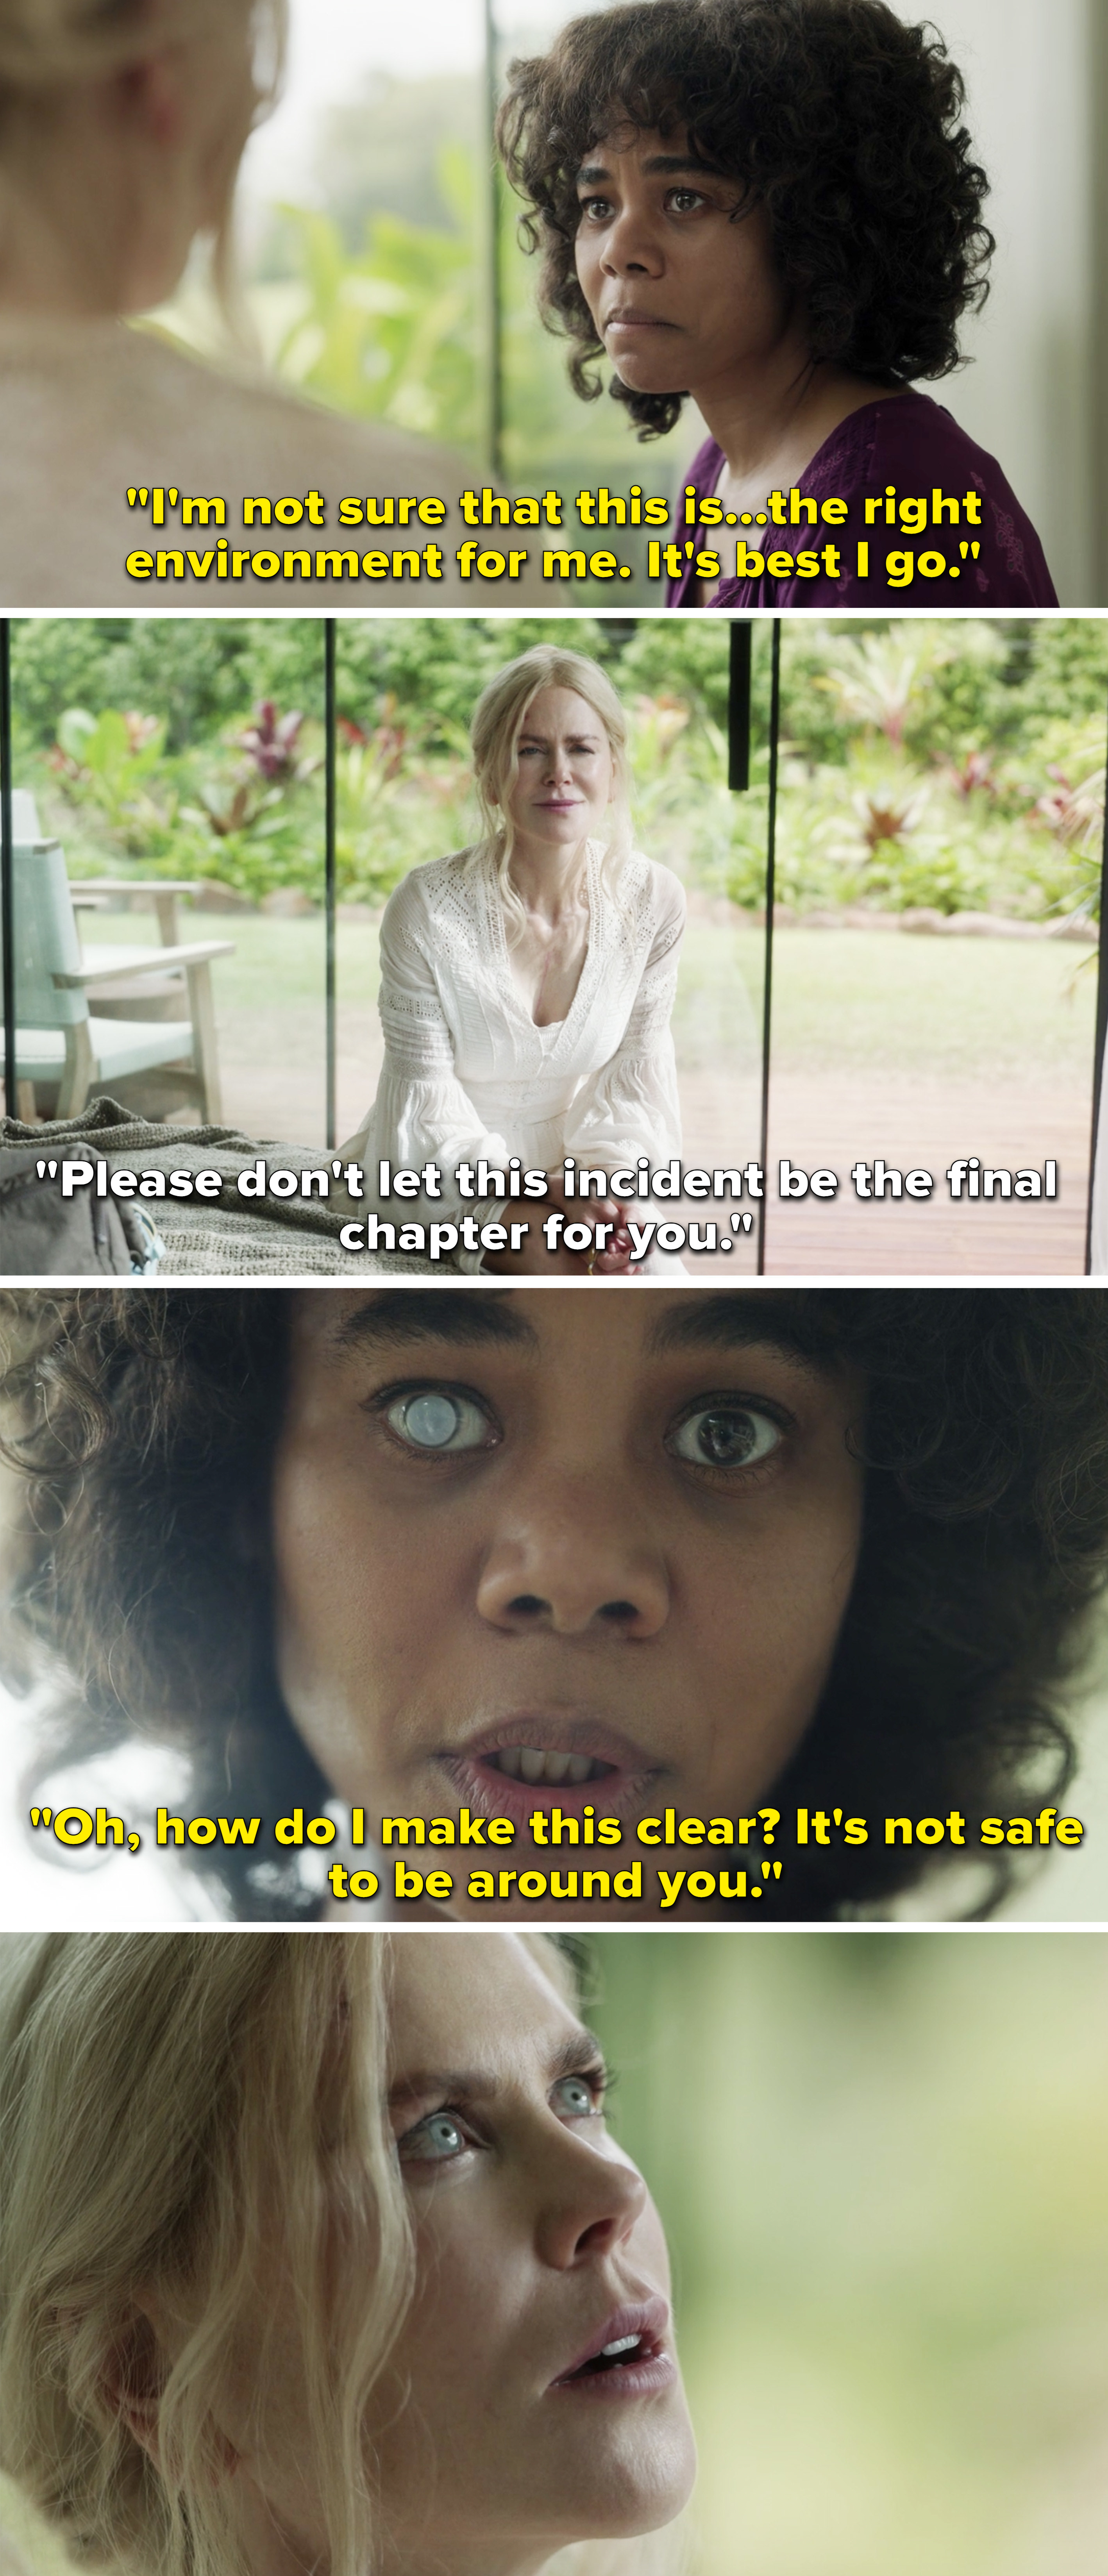 """Carmel telling Masha, """"Oh, how do I make this clear? It's not safe to be around you"""""""